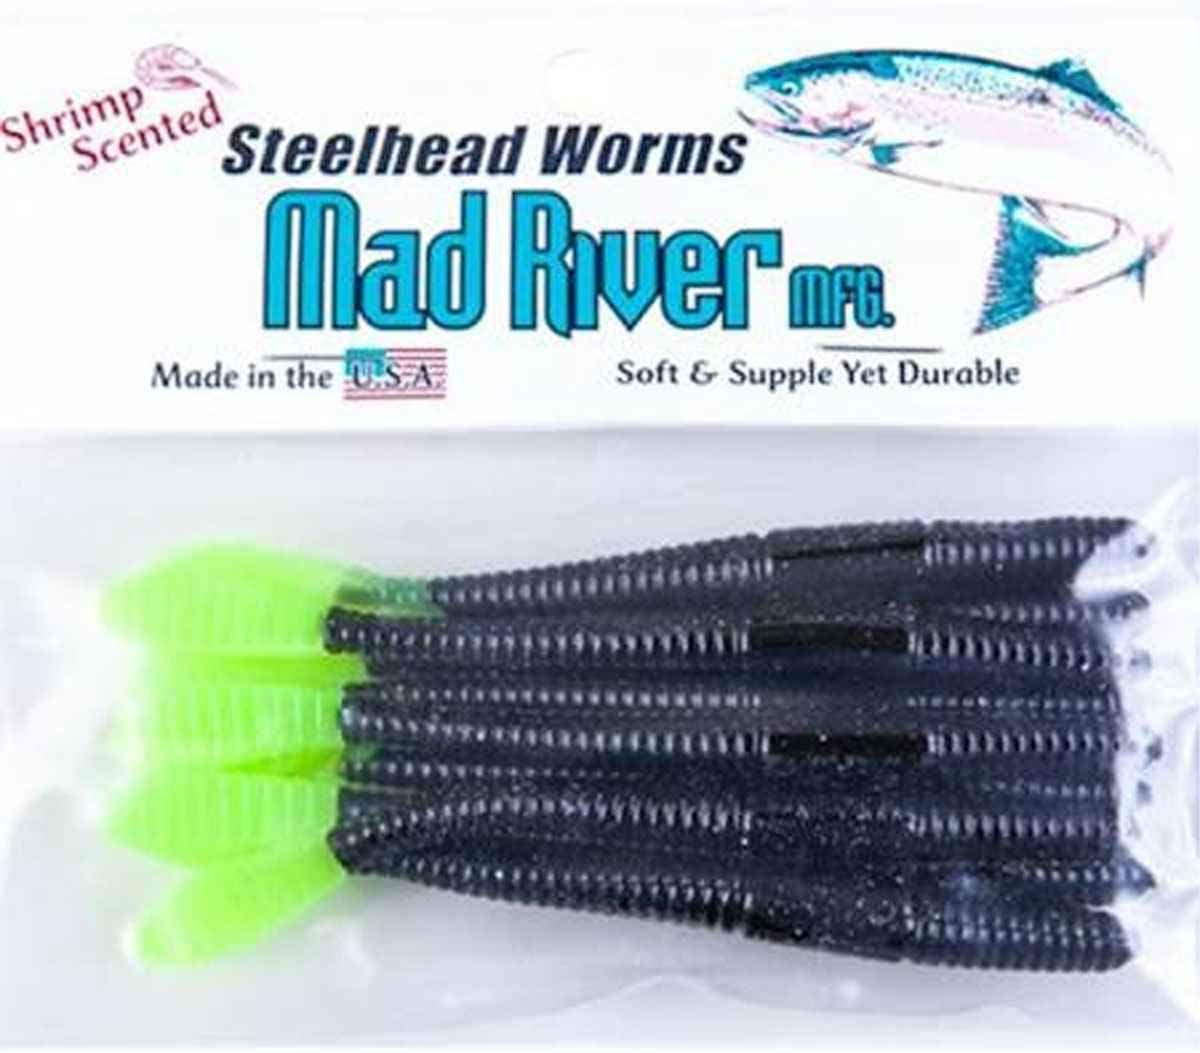 Sports & Outdoors Fly Line Mad River 4 Inch Steelhead Worms ...